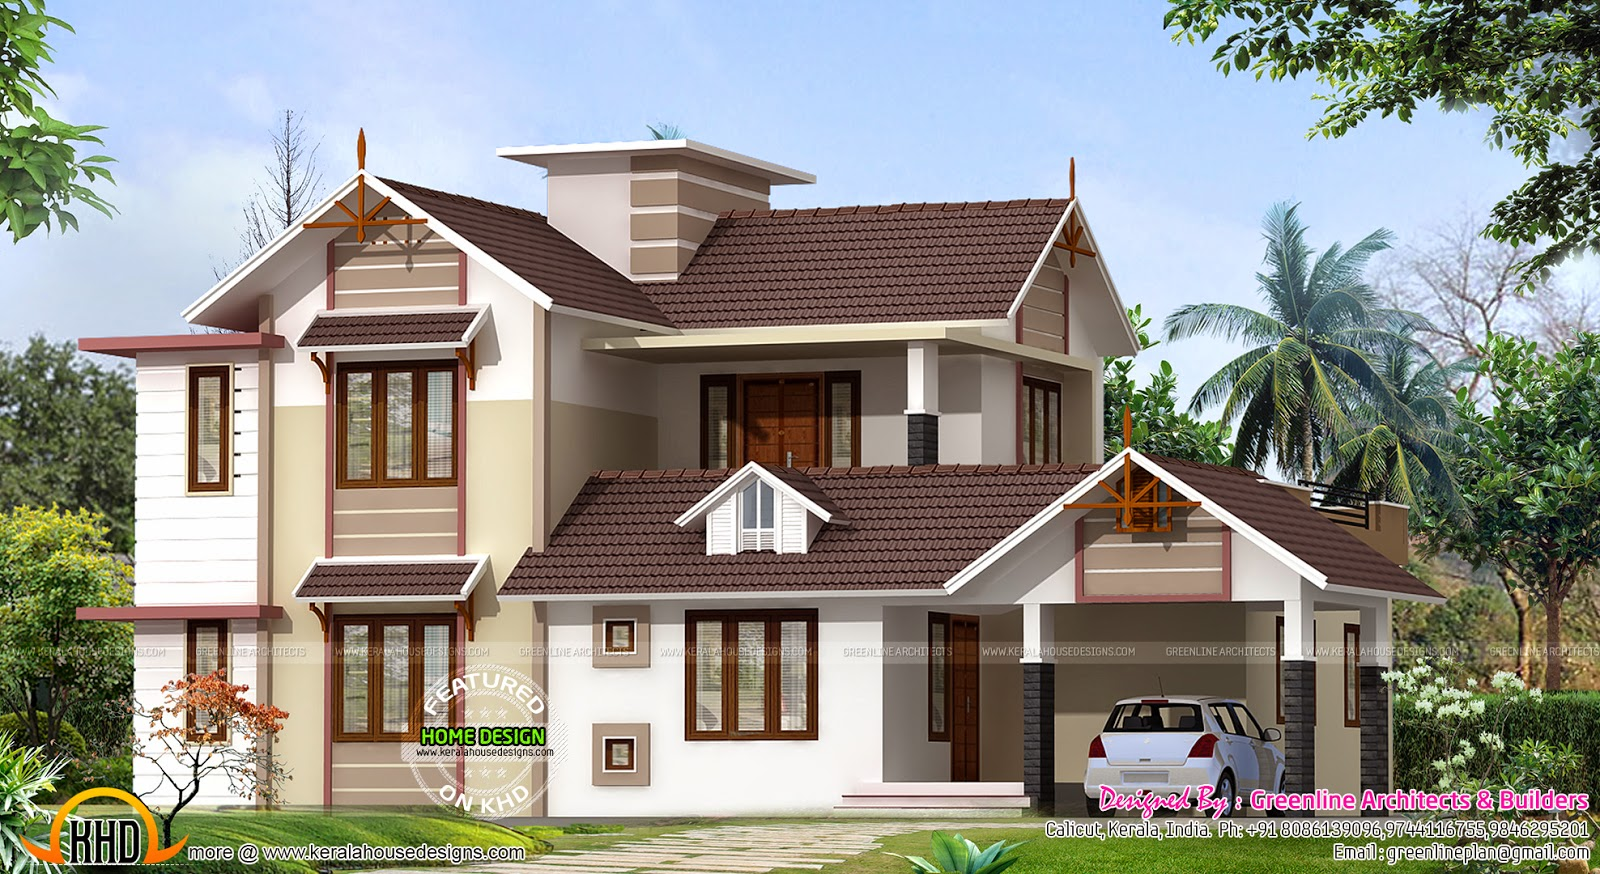 2400 sq ft new house design kerala home design and floor plans - Design of home ...